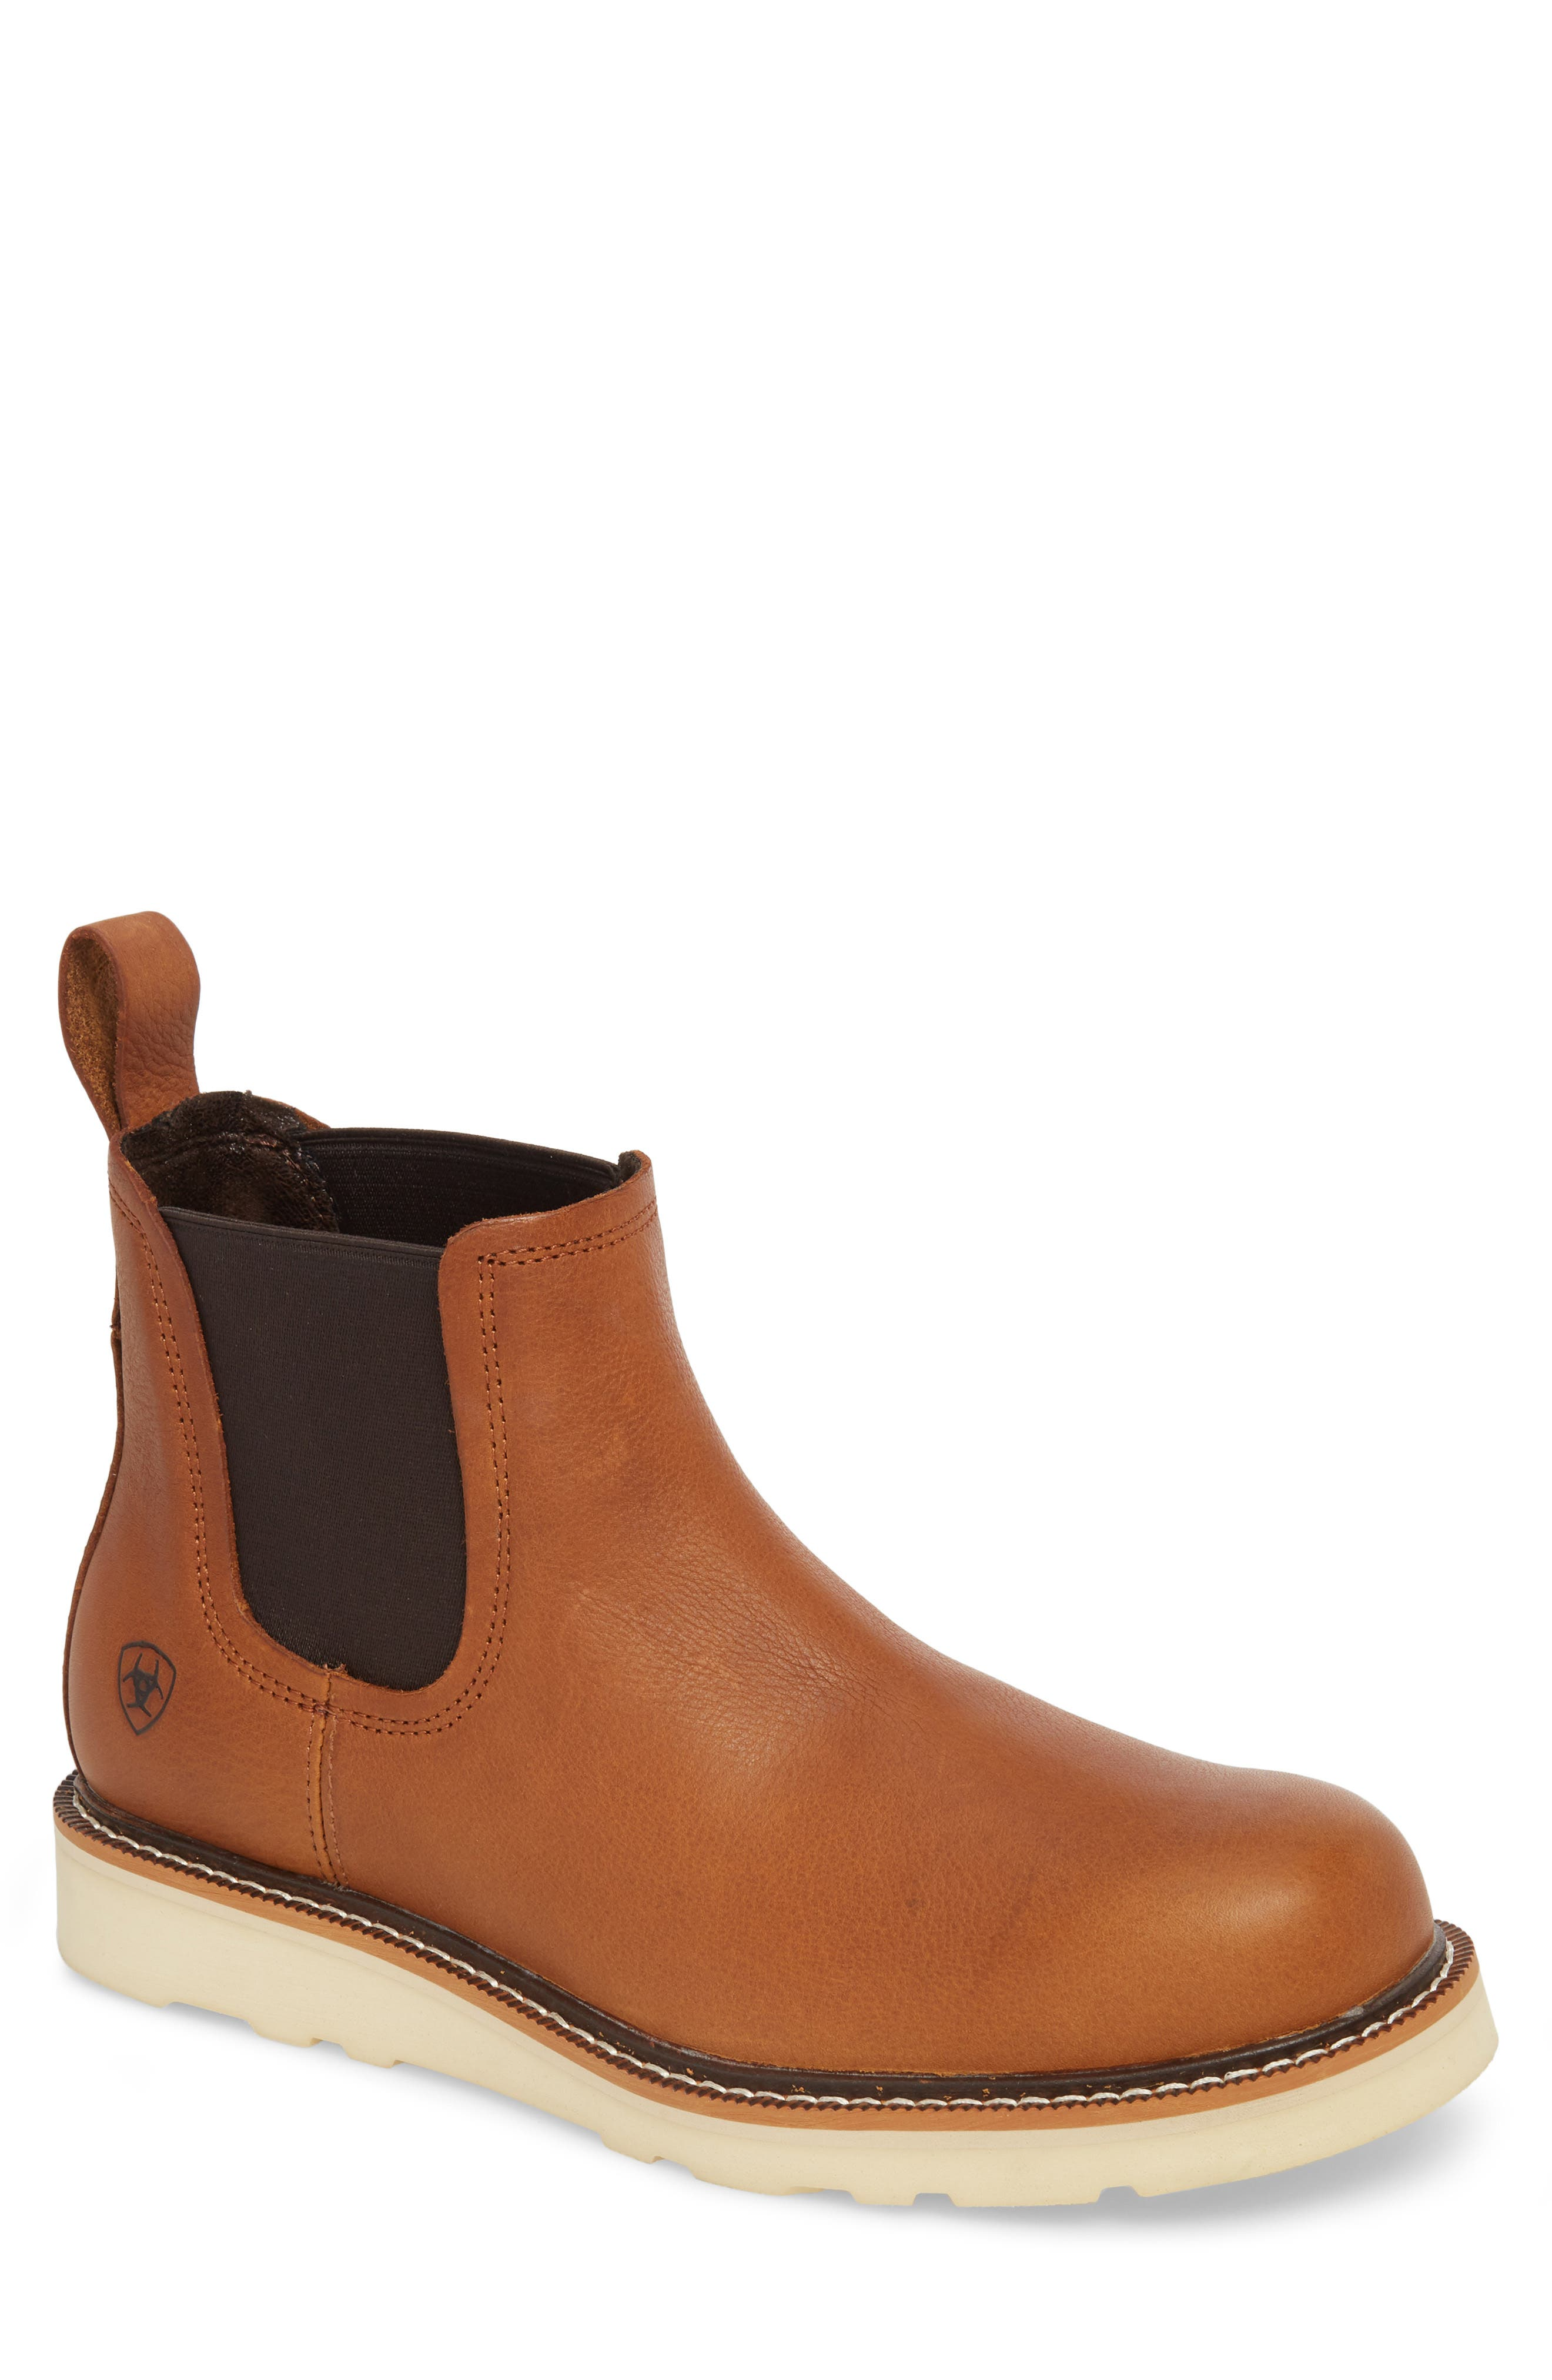 ARIAT Rambler Recon Mid Chelsea Boot, Main, color, GOLDEN GRIZZLY